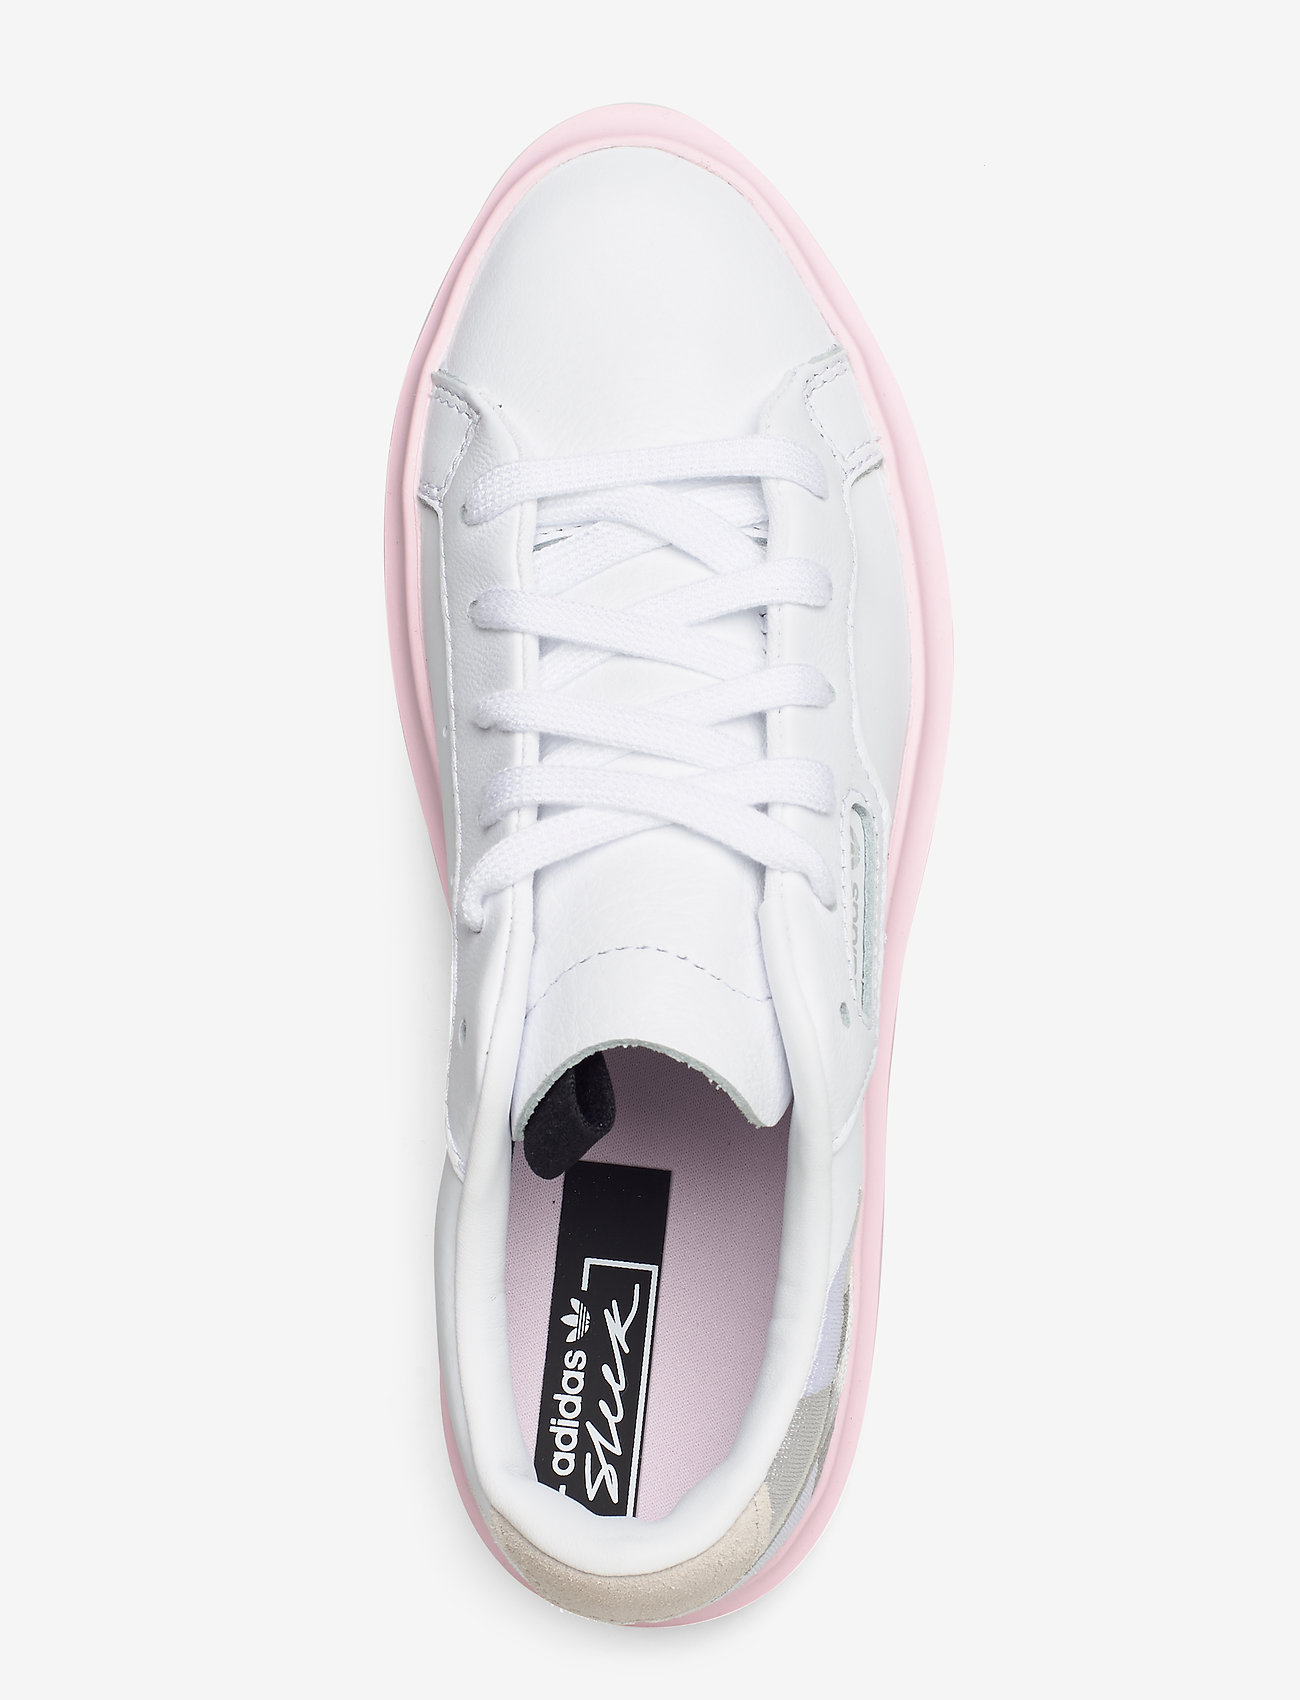 Adidas Originals Sleek Super W - Sneakers Ftwwht/gretwo/clpink